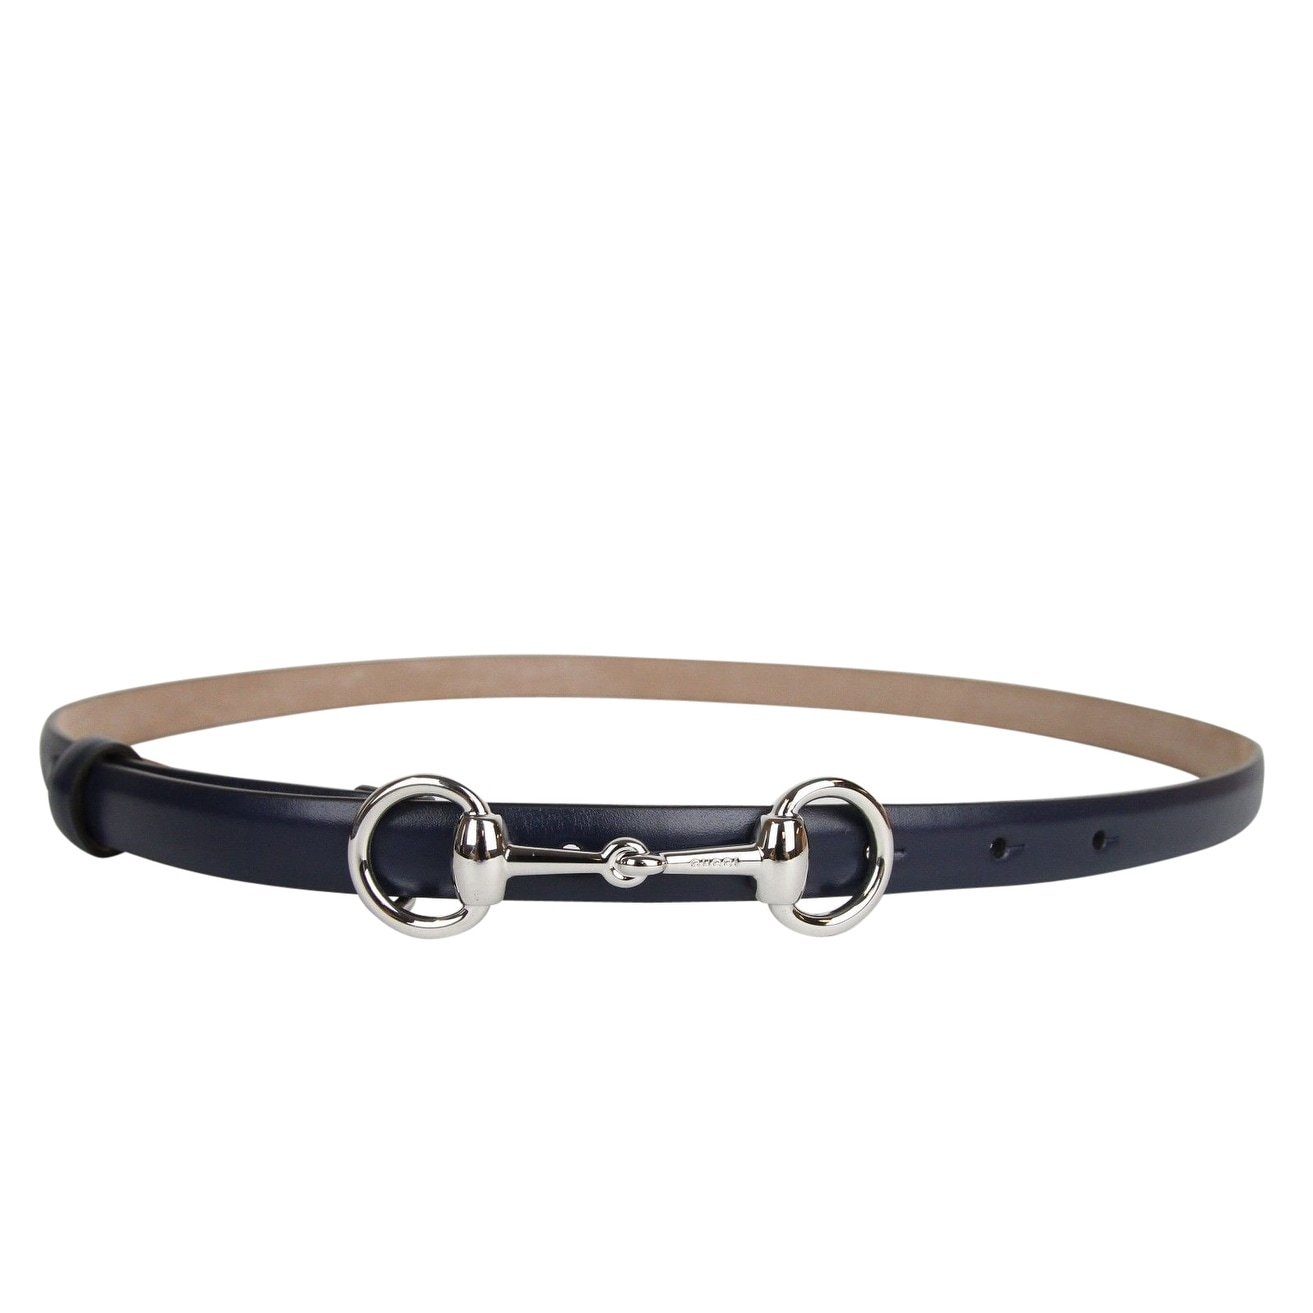 1594fcb6500 Shop Gucci Women s Horsebit Buckle Navy Leather Thin Skinny Belt 282349  4116 - 100   40 - Free Shipping Today - Overstock - 25628981